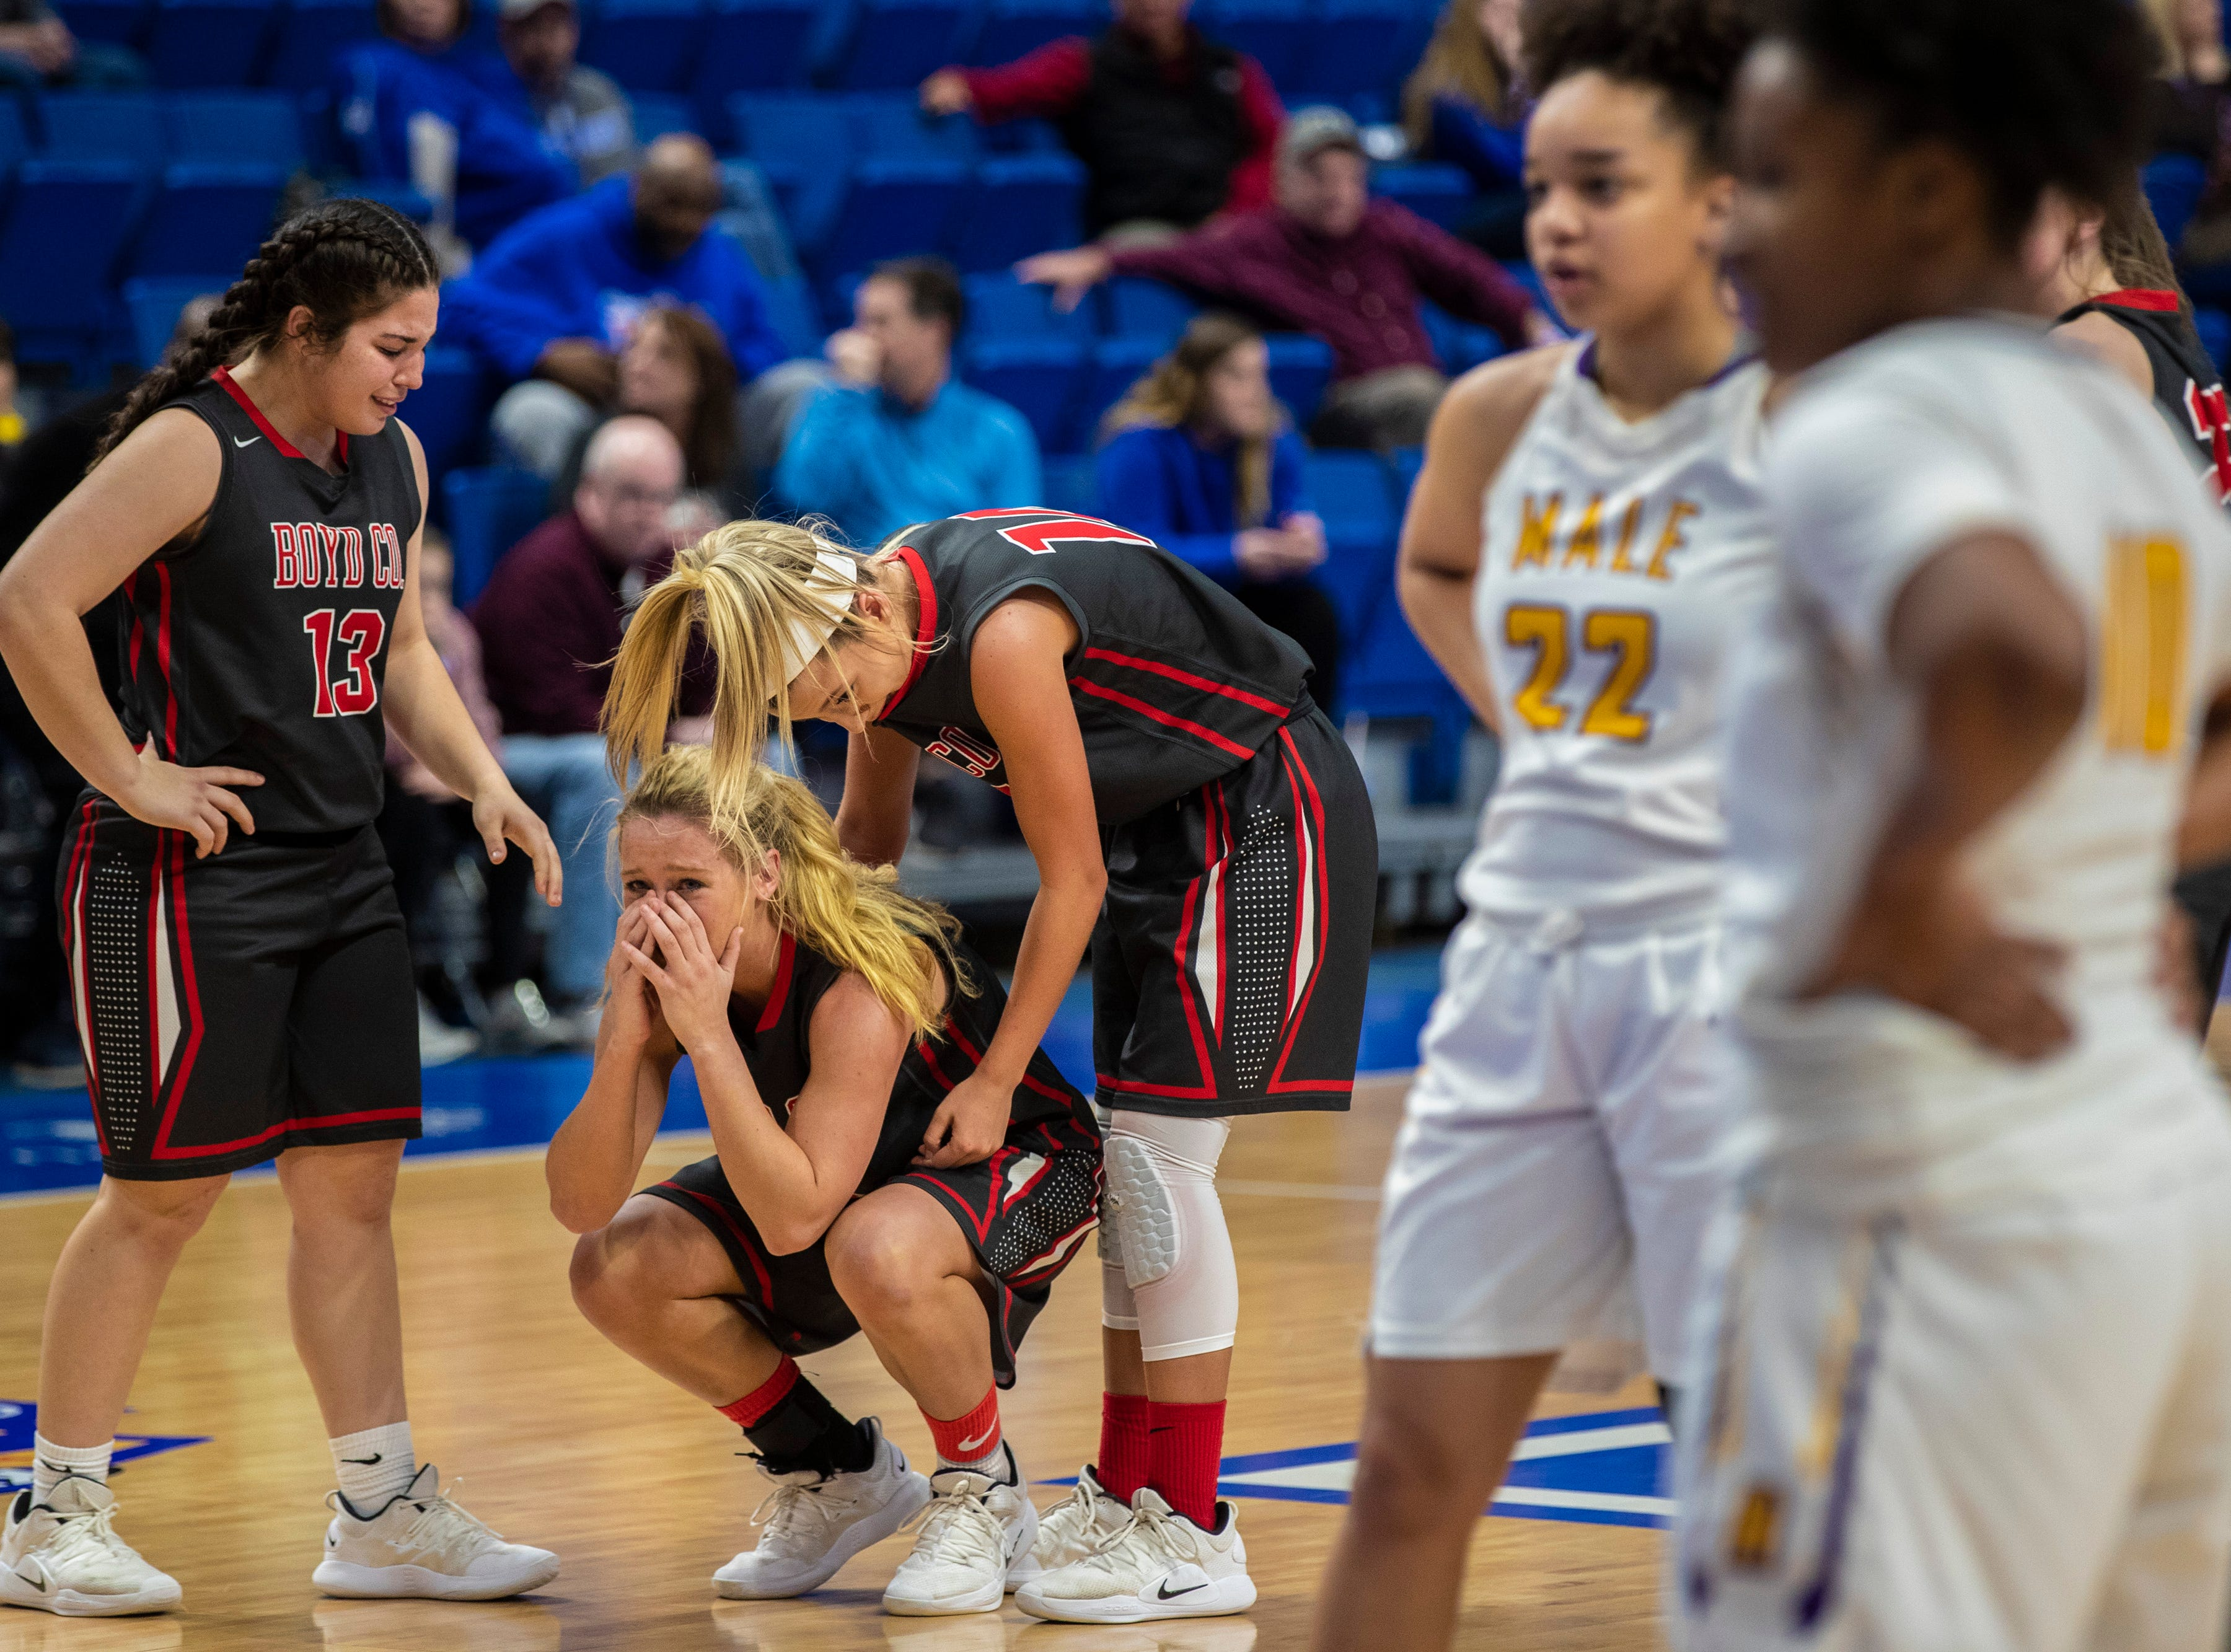 Boyd County's Graci Opell, from left, looks on as teammate Savannah Wheeler is comforted by Harley Painter as they react to their imminent defeat to Louisville Male in the KHSAA state basketball tournament in Rupp Arena. Male eliminated Boyd County 74-56. March 14, 2019